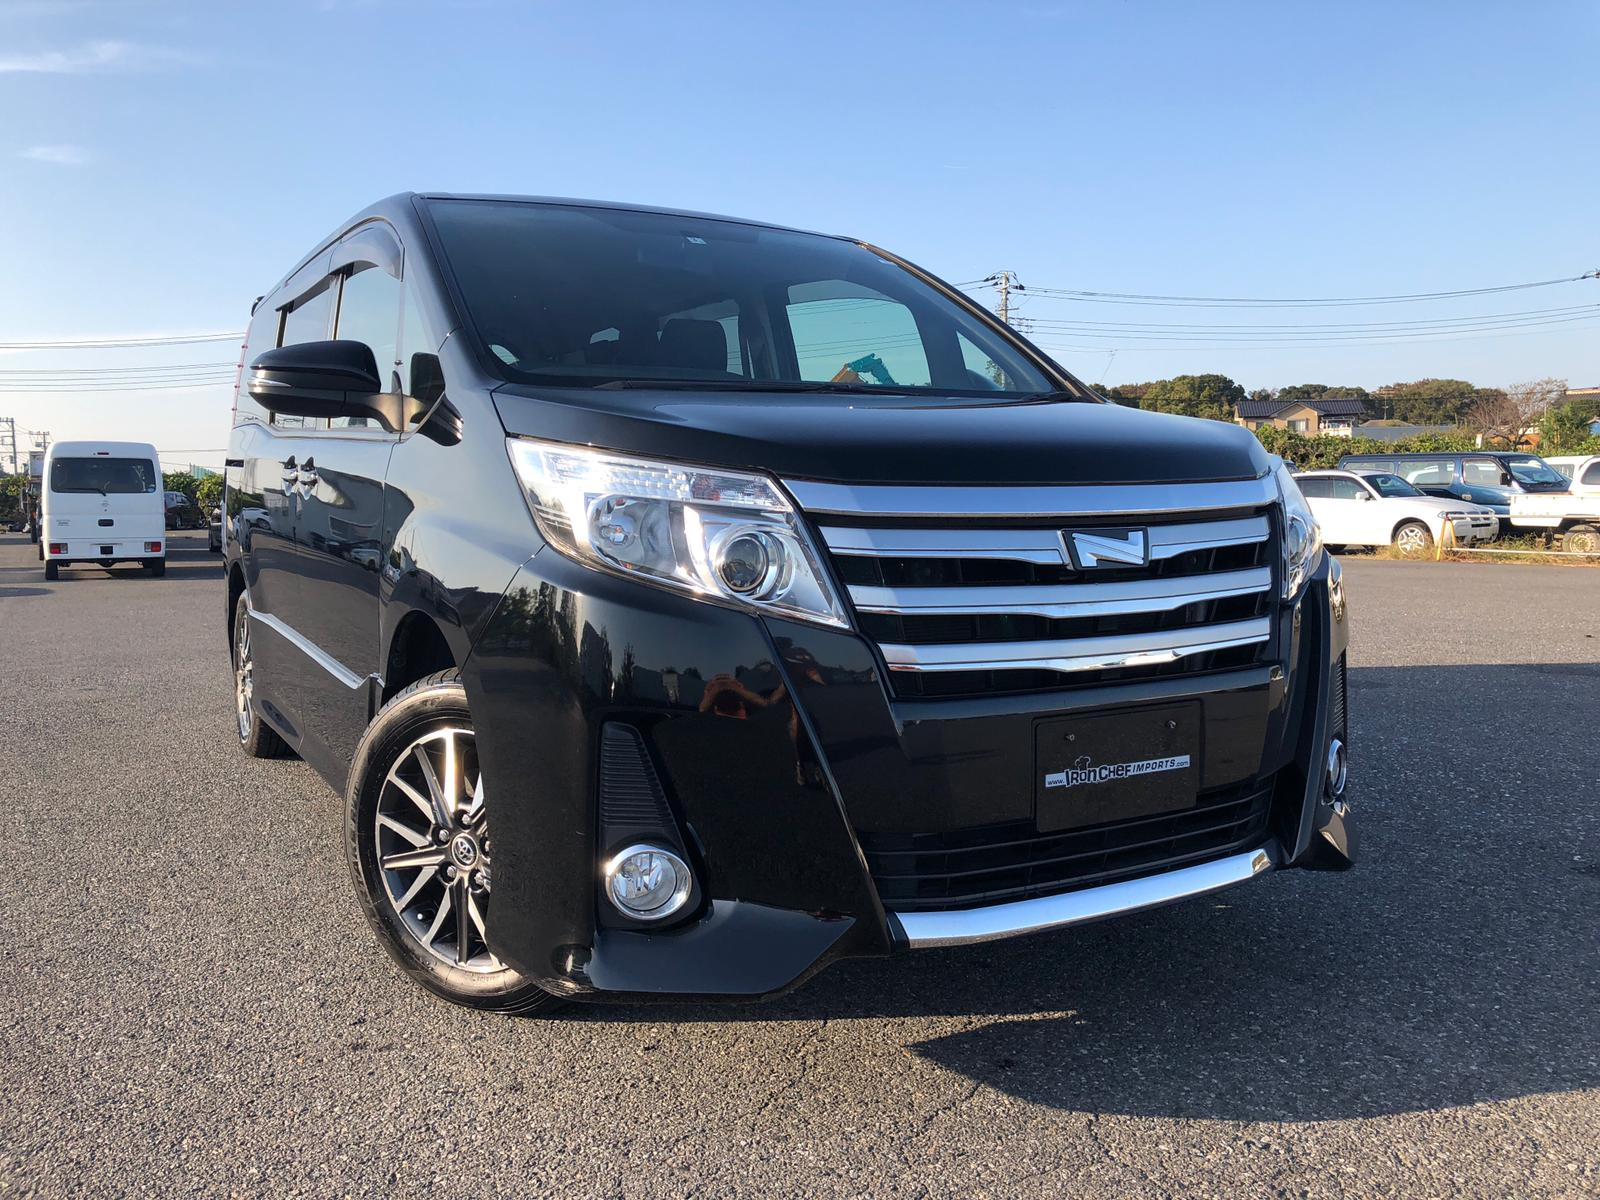 Picture of Anthony's 2014 Toyota Noah